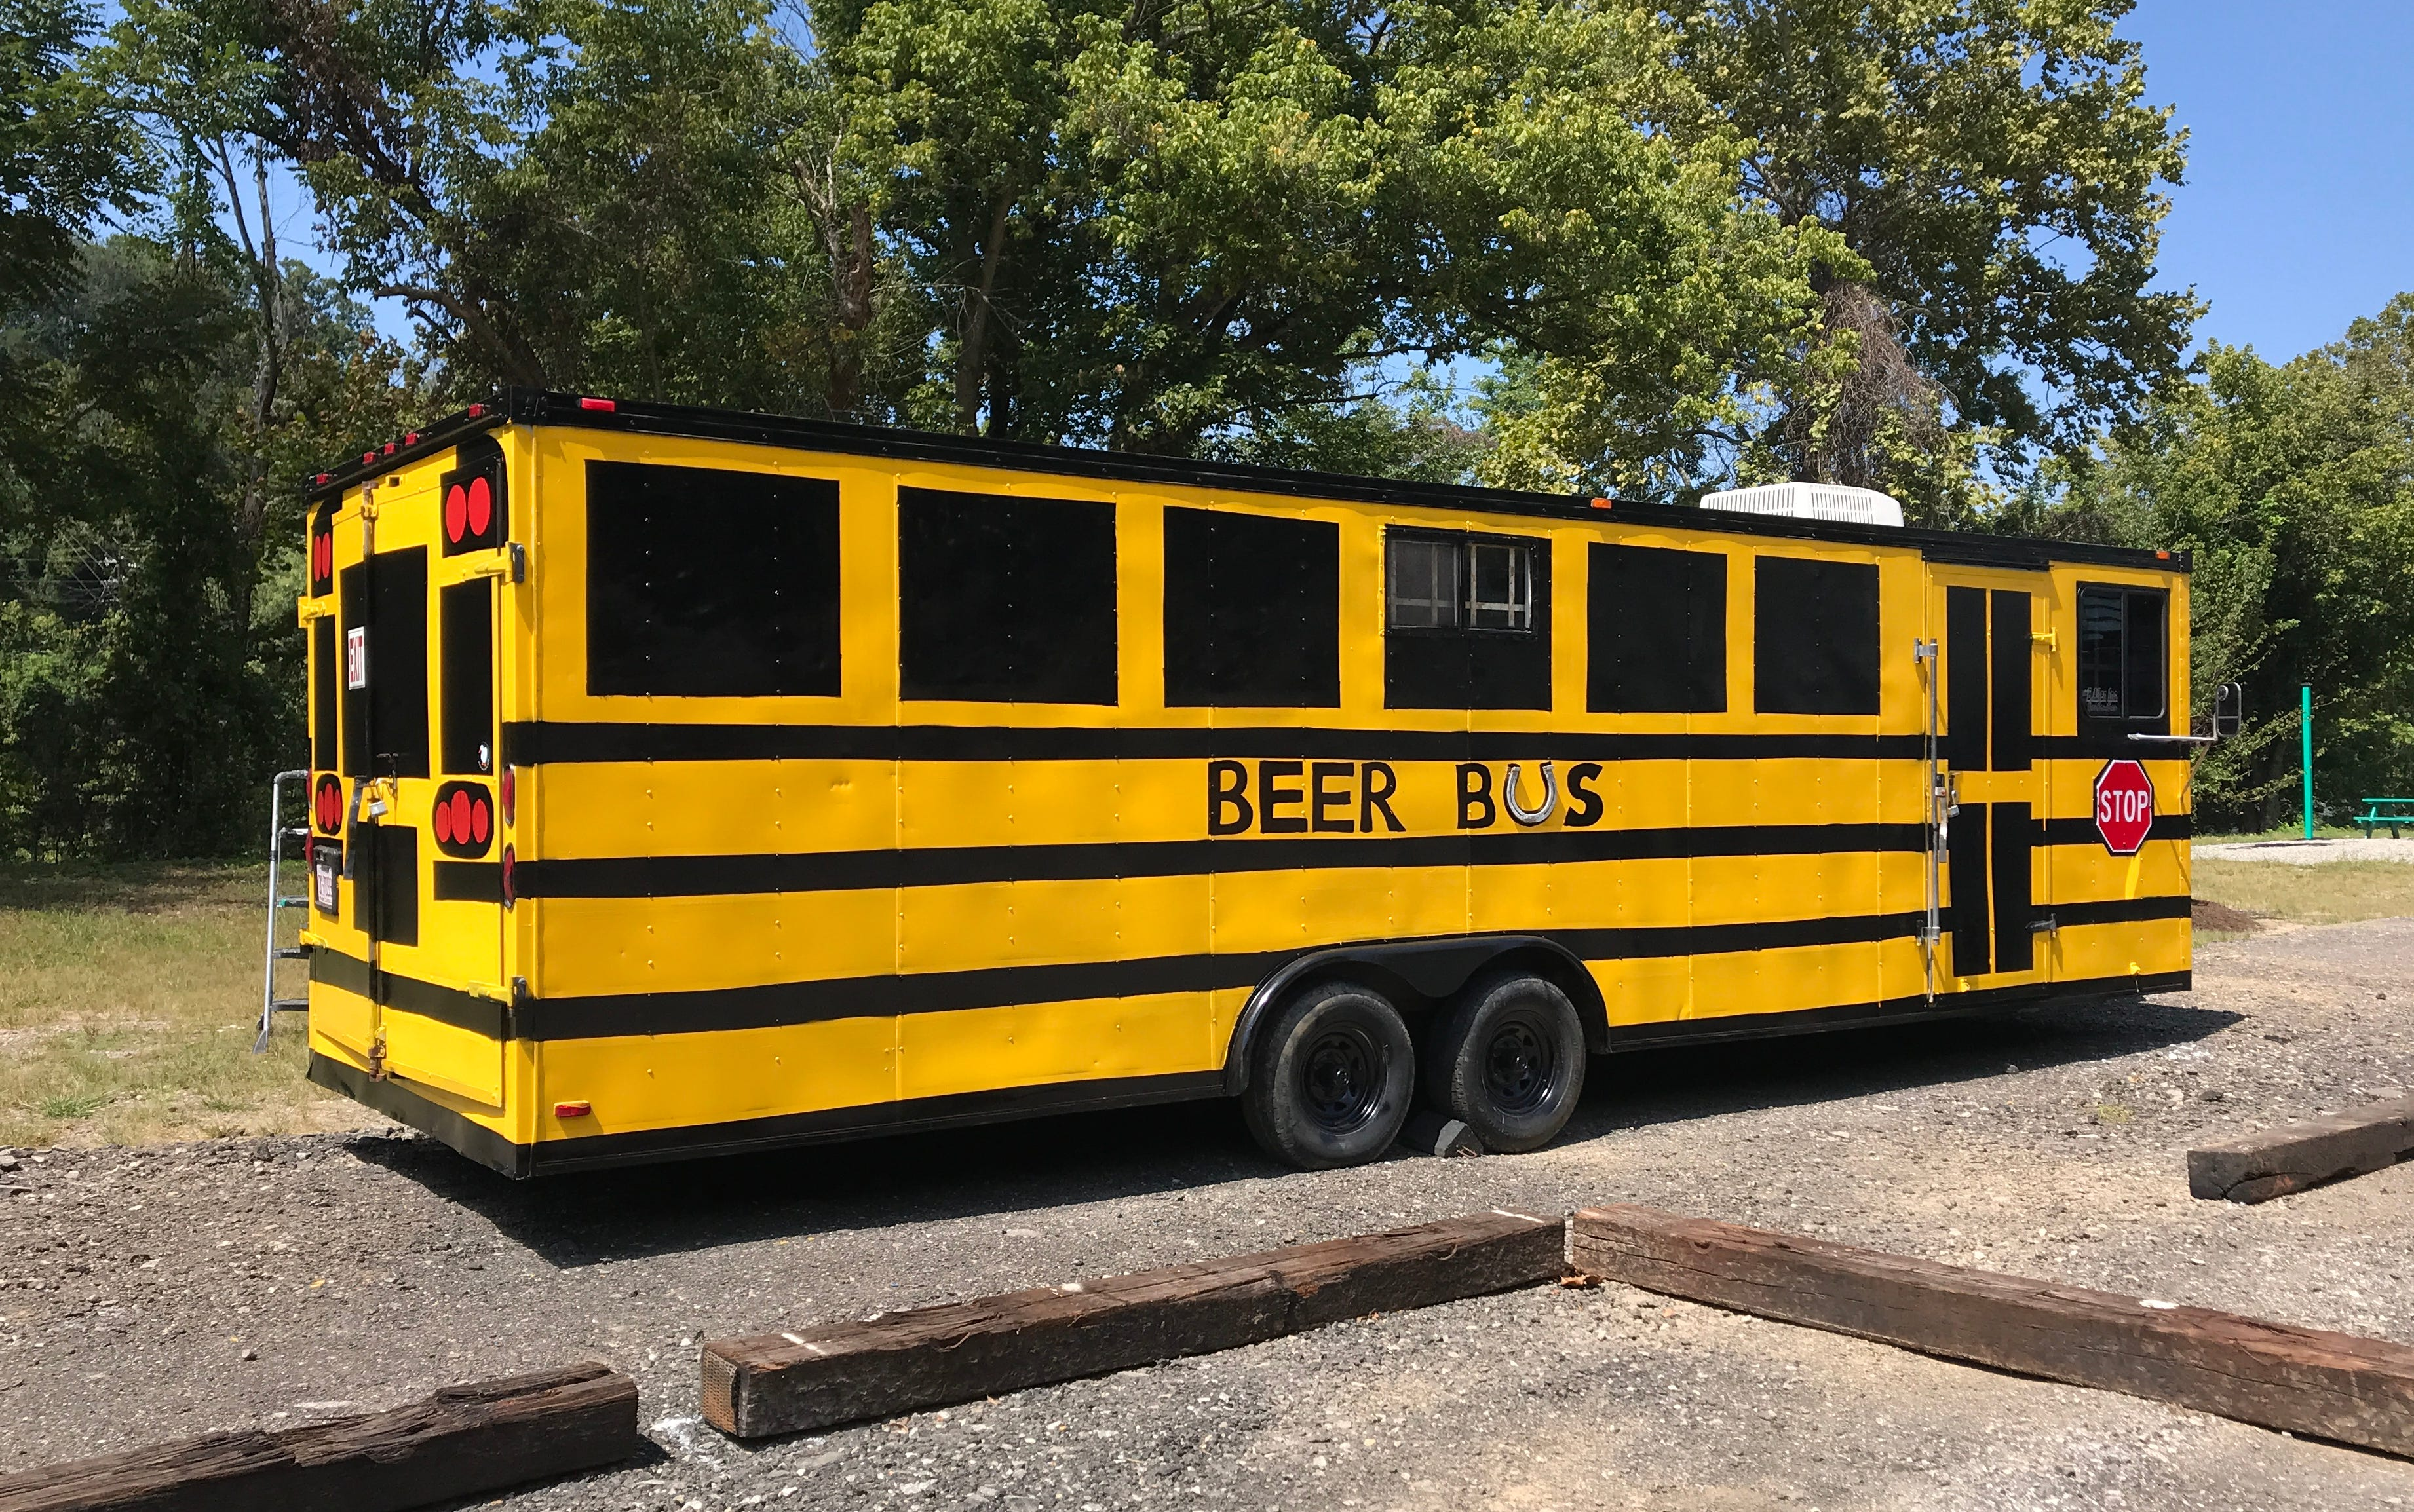 The Beer Bus is nearly ready to pour drinks and cocktails on the White Duck Taco Shop property.